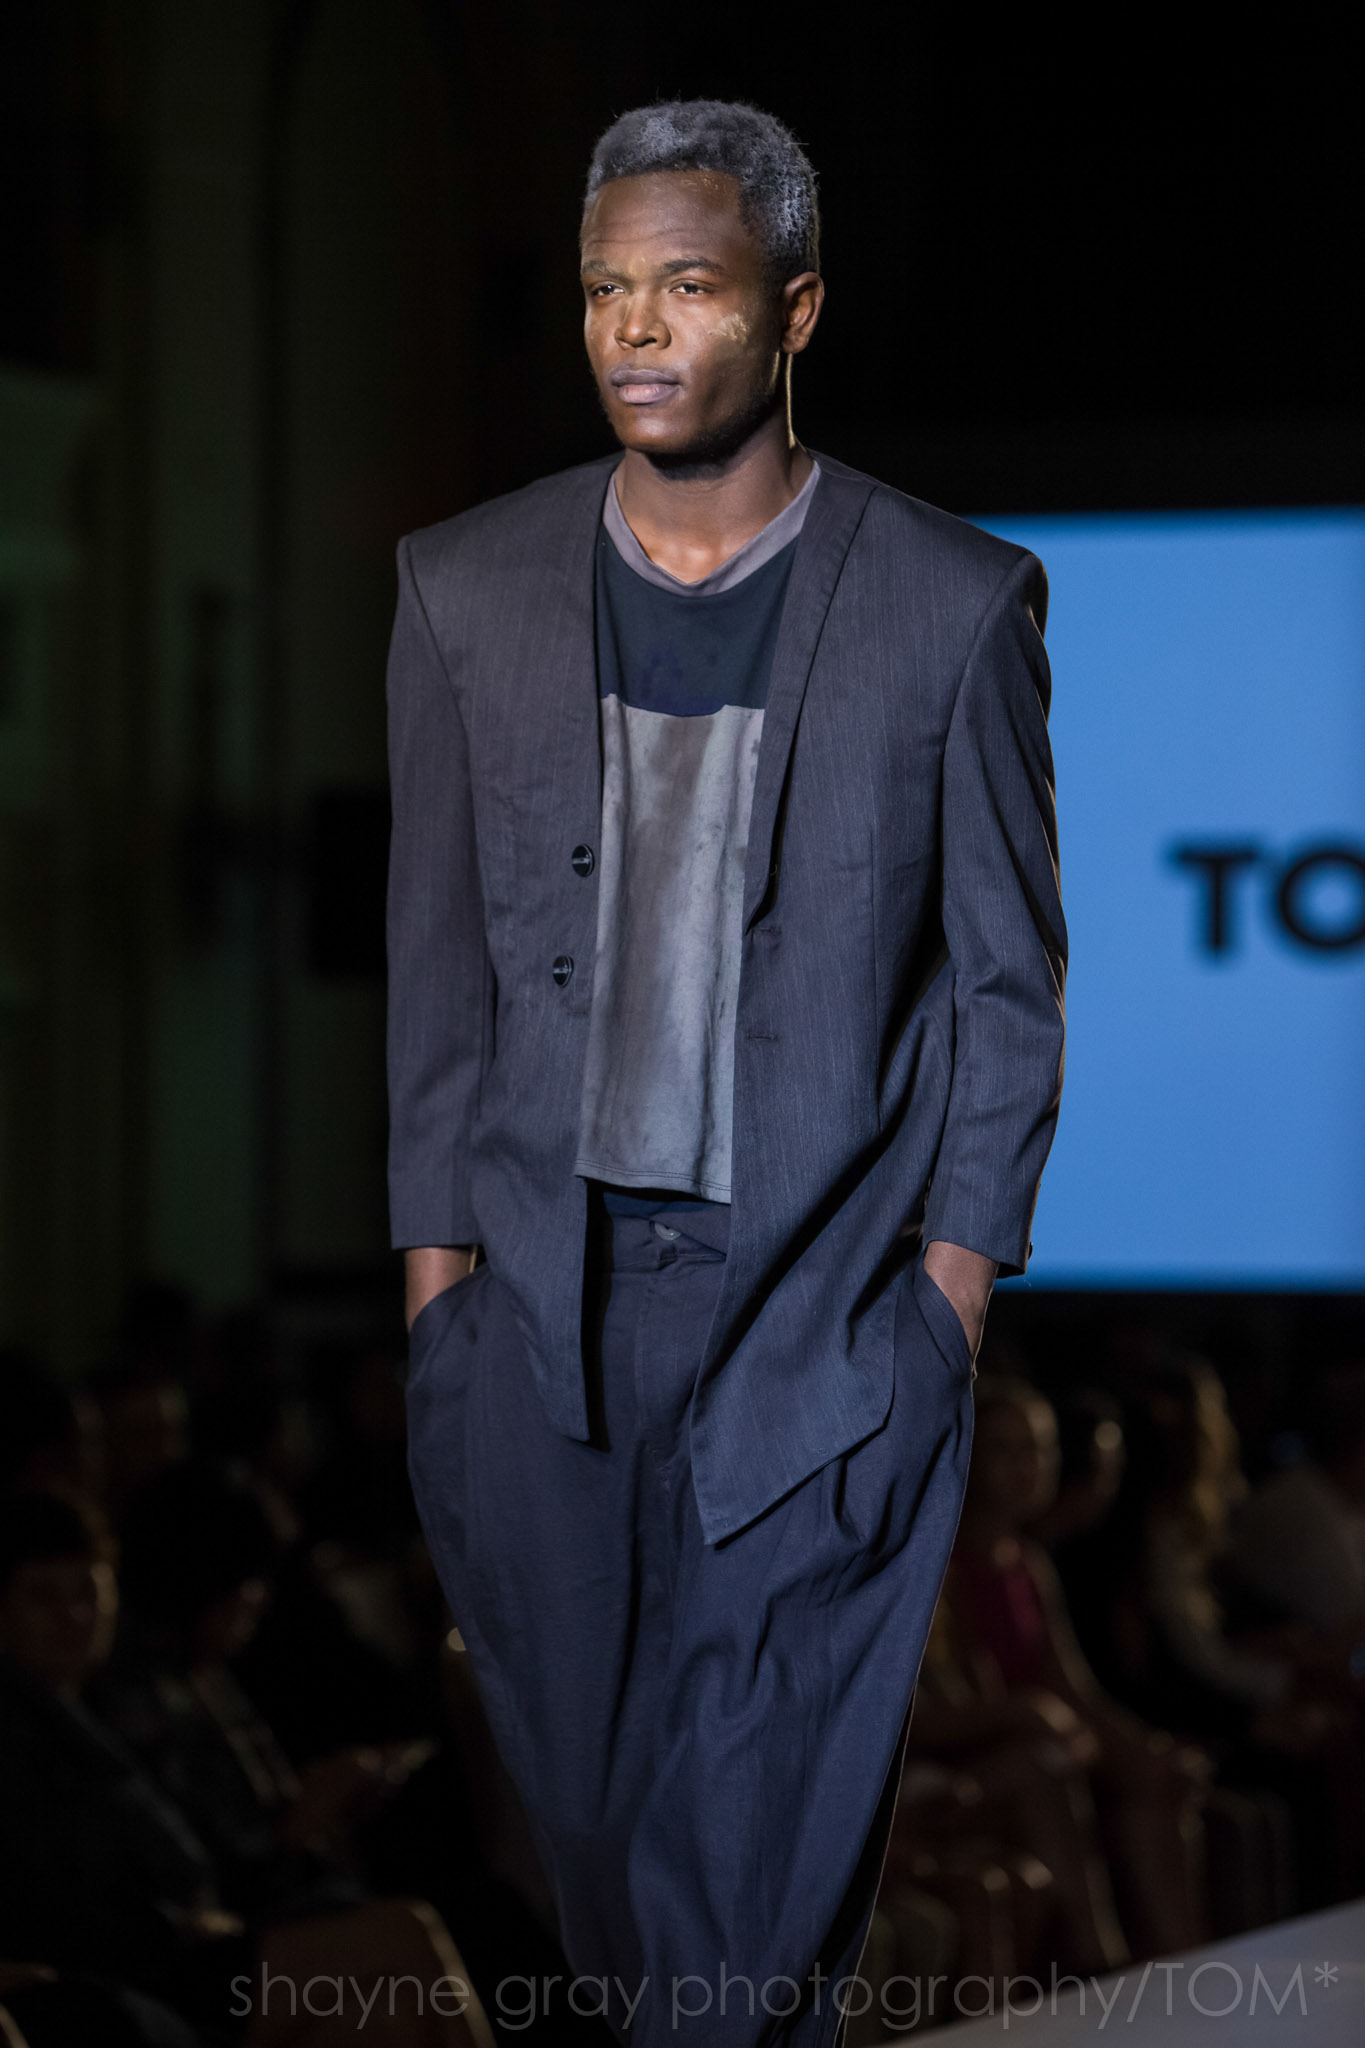 Shayne-Gray-Toronto-men's-fashion_week-TOM-jose-duran-7698.jpg